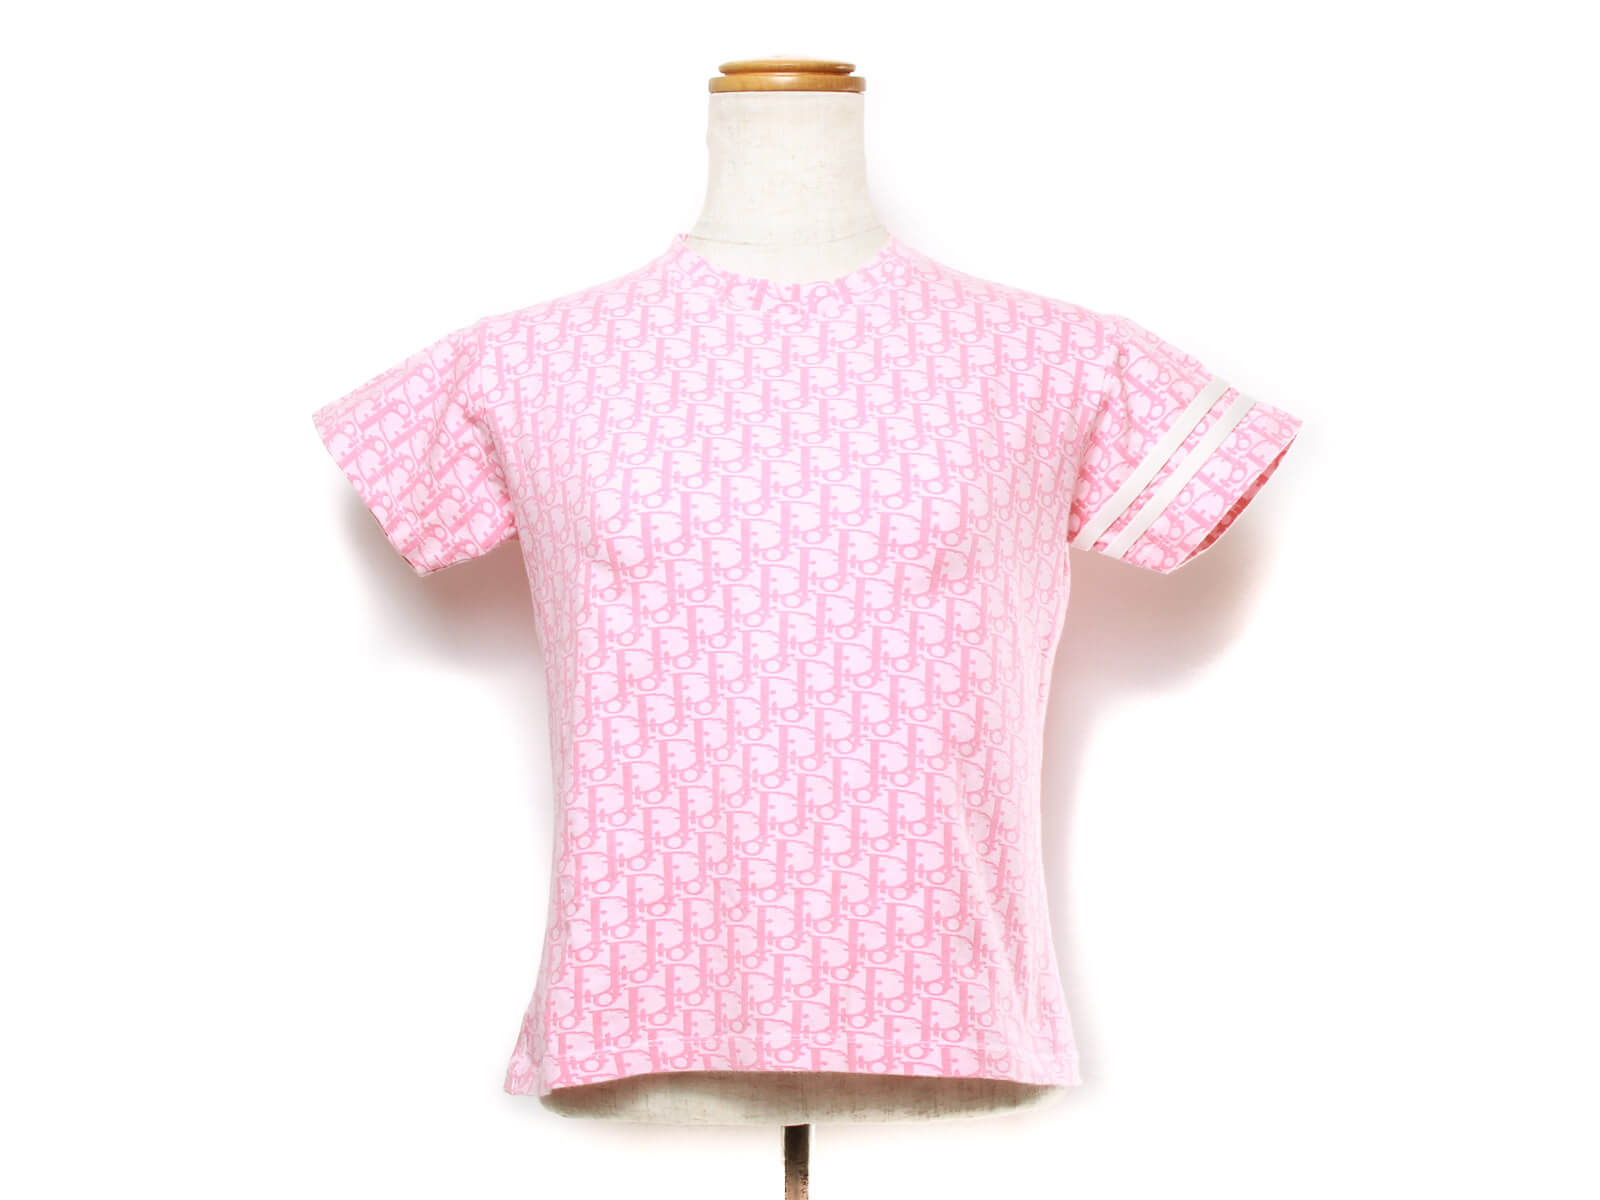 Authentic Christian Dior Trotter Pattern pink tshirt